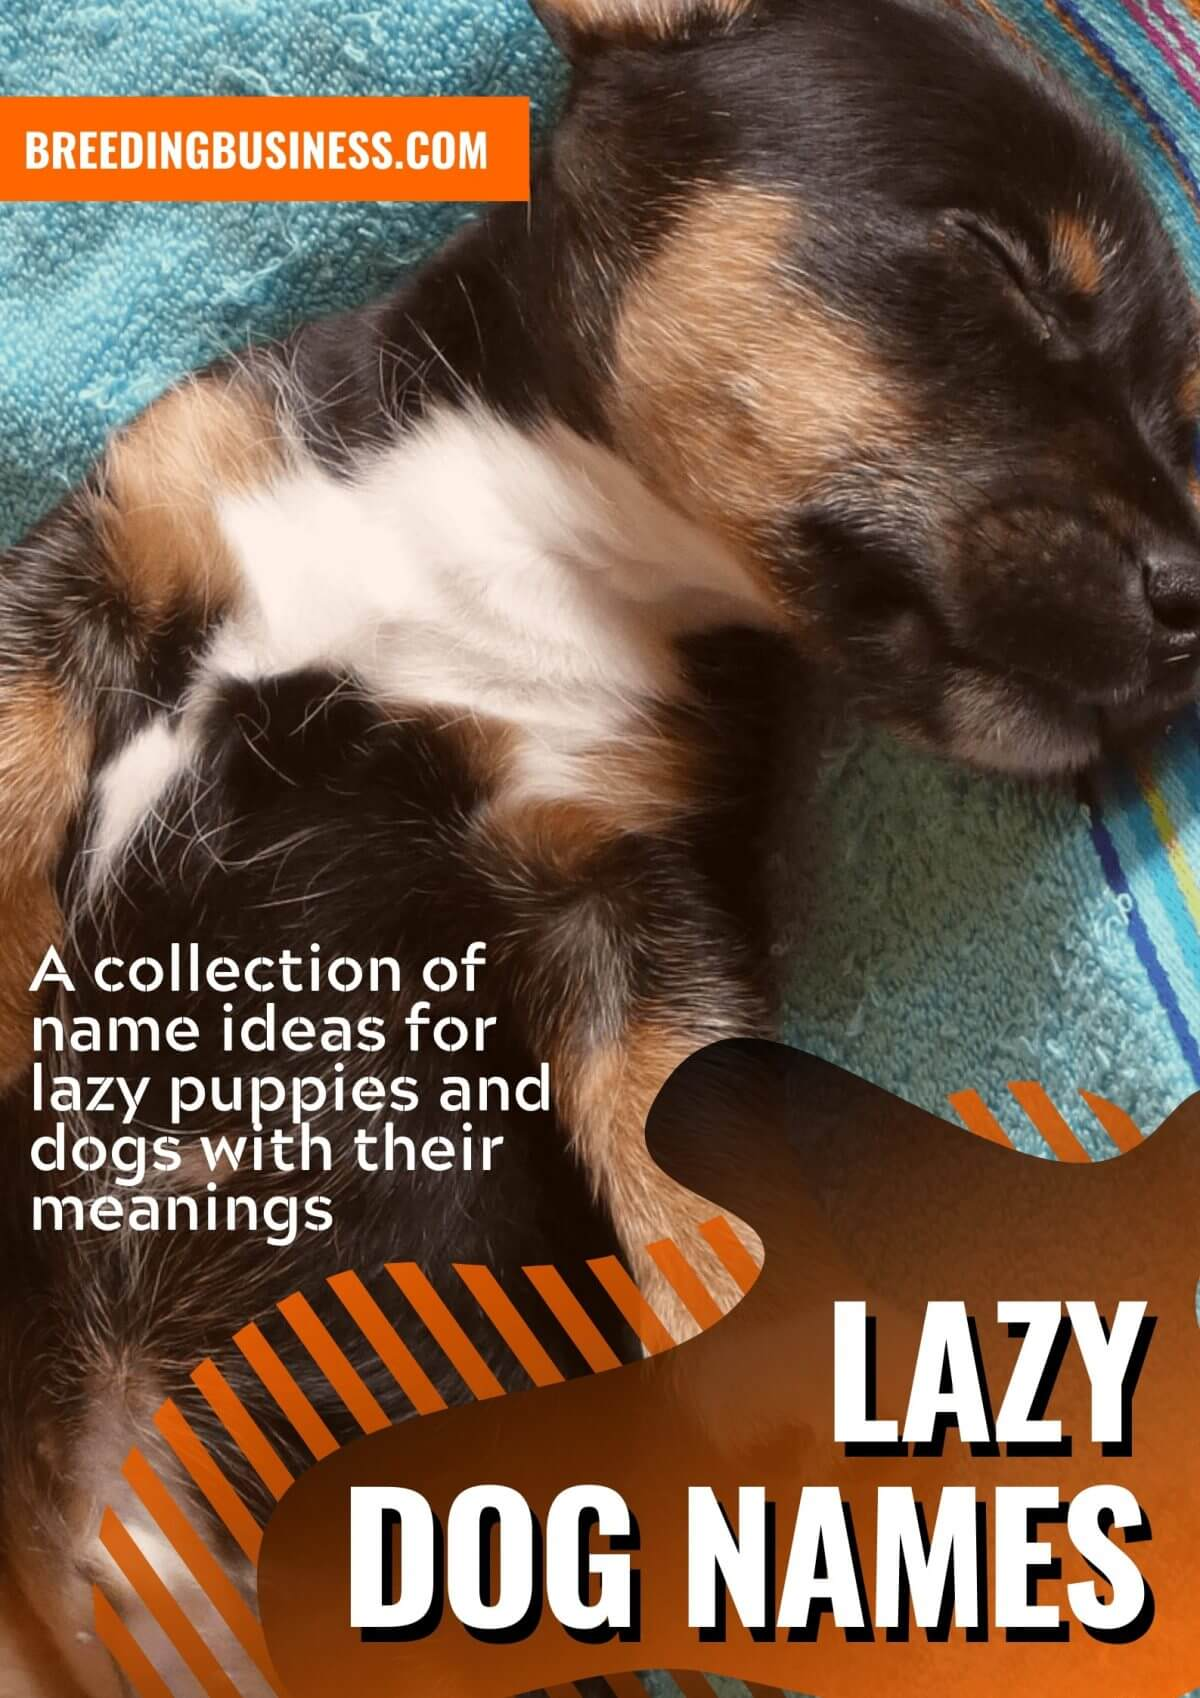 100 Lazy Dog Names Top Name Ideas For Lazy Low Energy Puppies